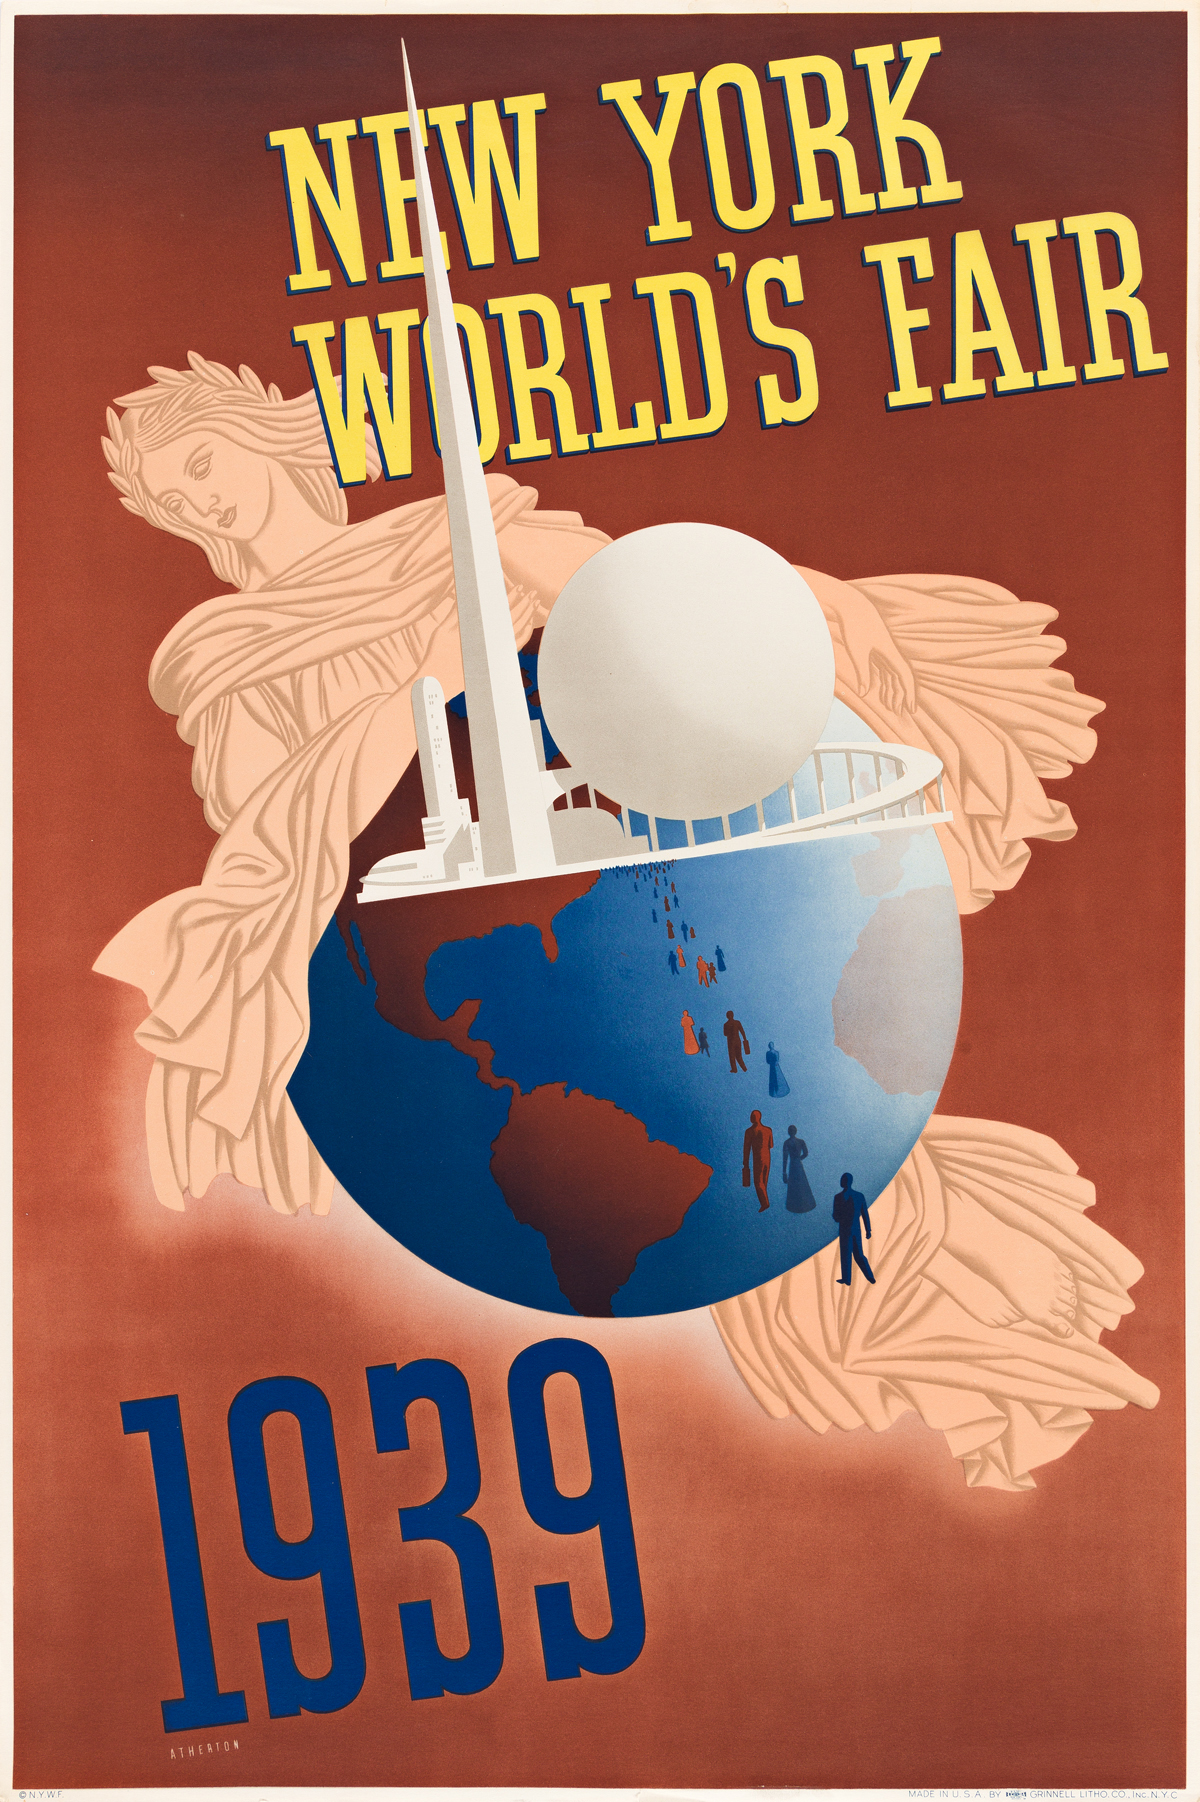 JOHN ATHERTON (1900-1952) New York Worlds Fair.